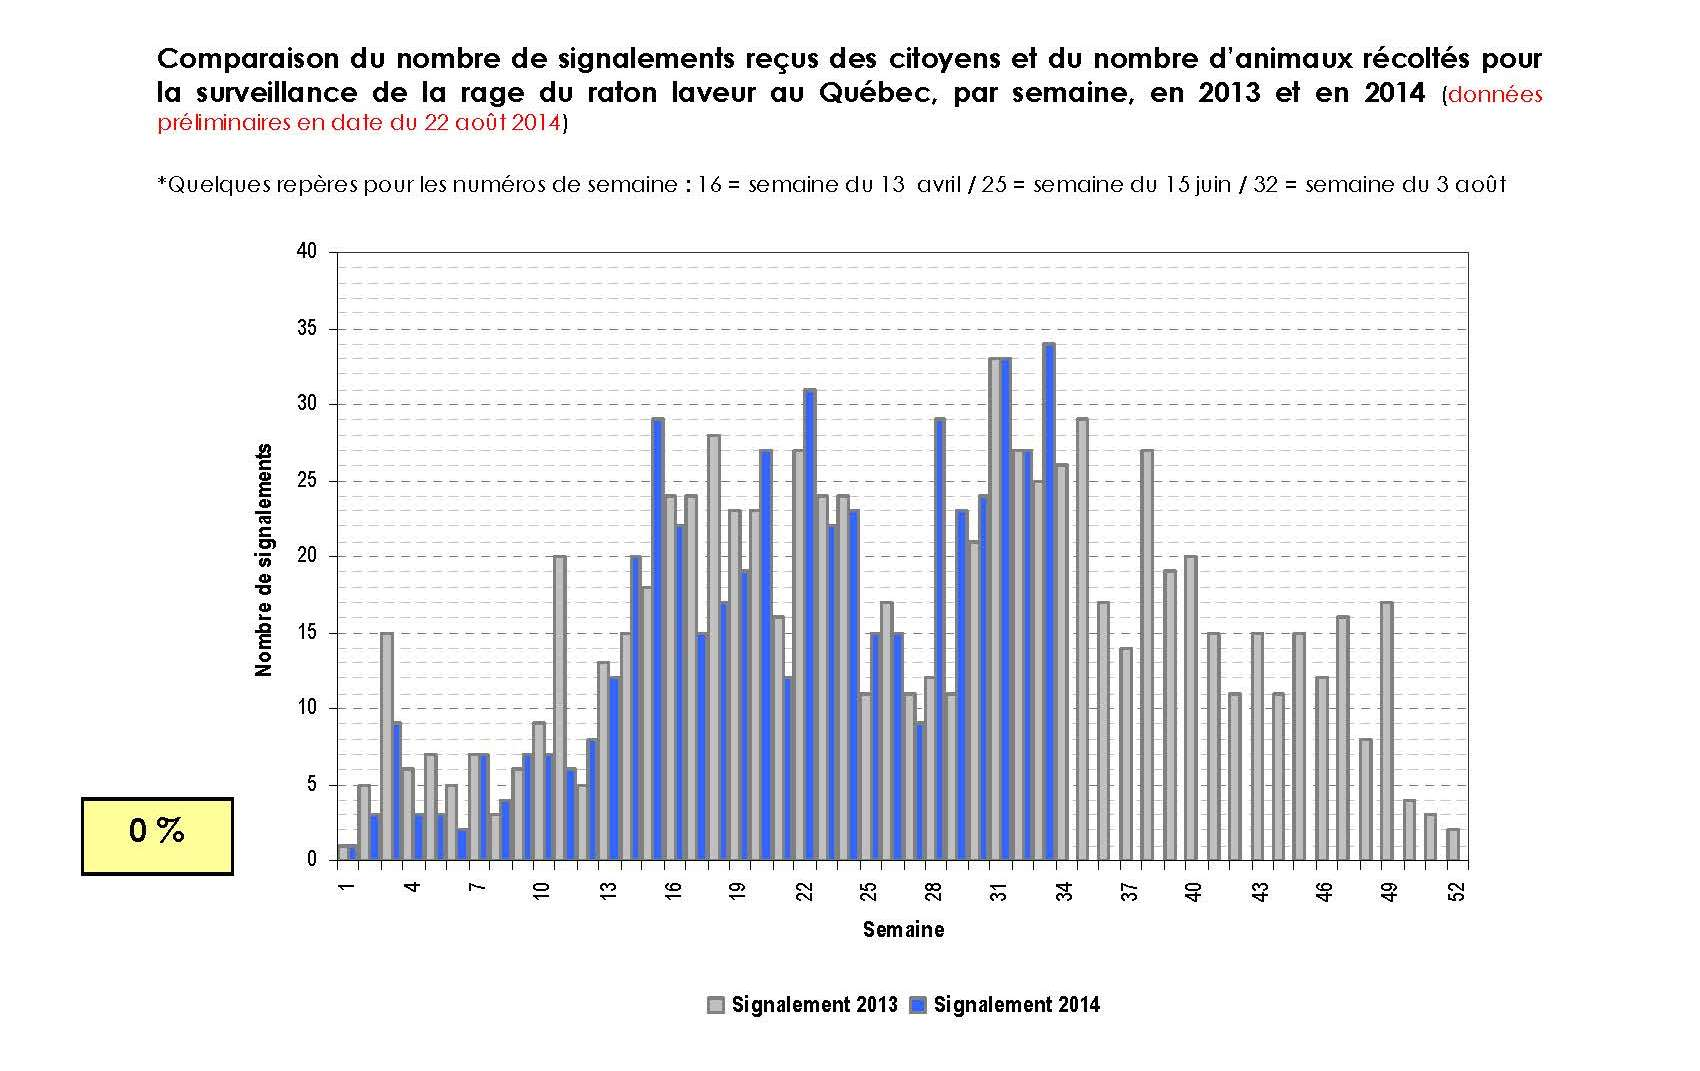 Number of citizen reports and animals collected for surveillance of raccoon rabies - comparison by week for 2013 and 2014